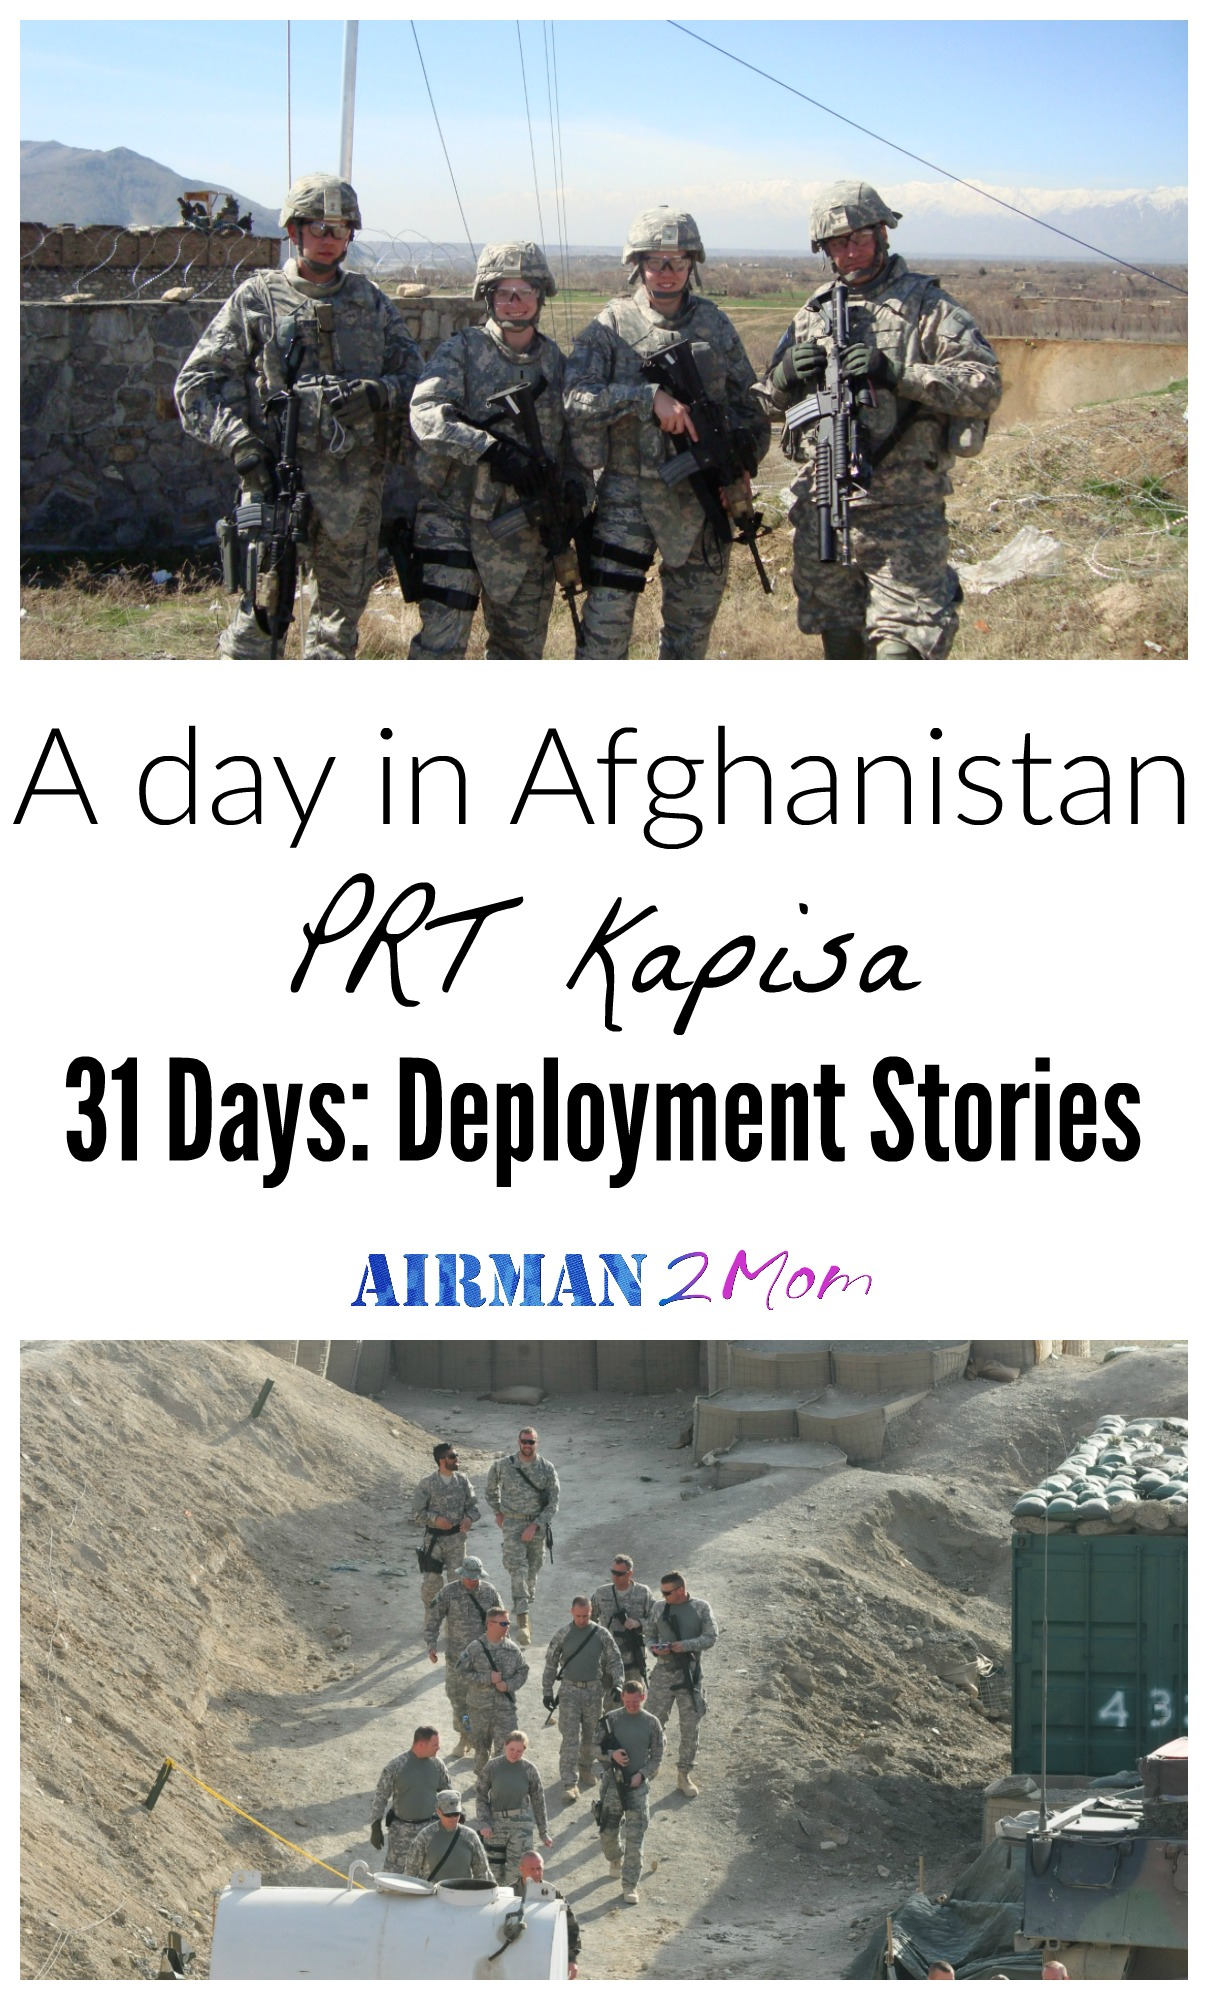 A day in Afghanistan, Kapisa PRT. My friend shares her experience of what it was like to be on the Kapisa PRT in Afghanistan. Day 5 of 31 Deployment Stories #write31days #deployment #deploymentstories #thisisdeployment #femaleveteran